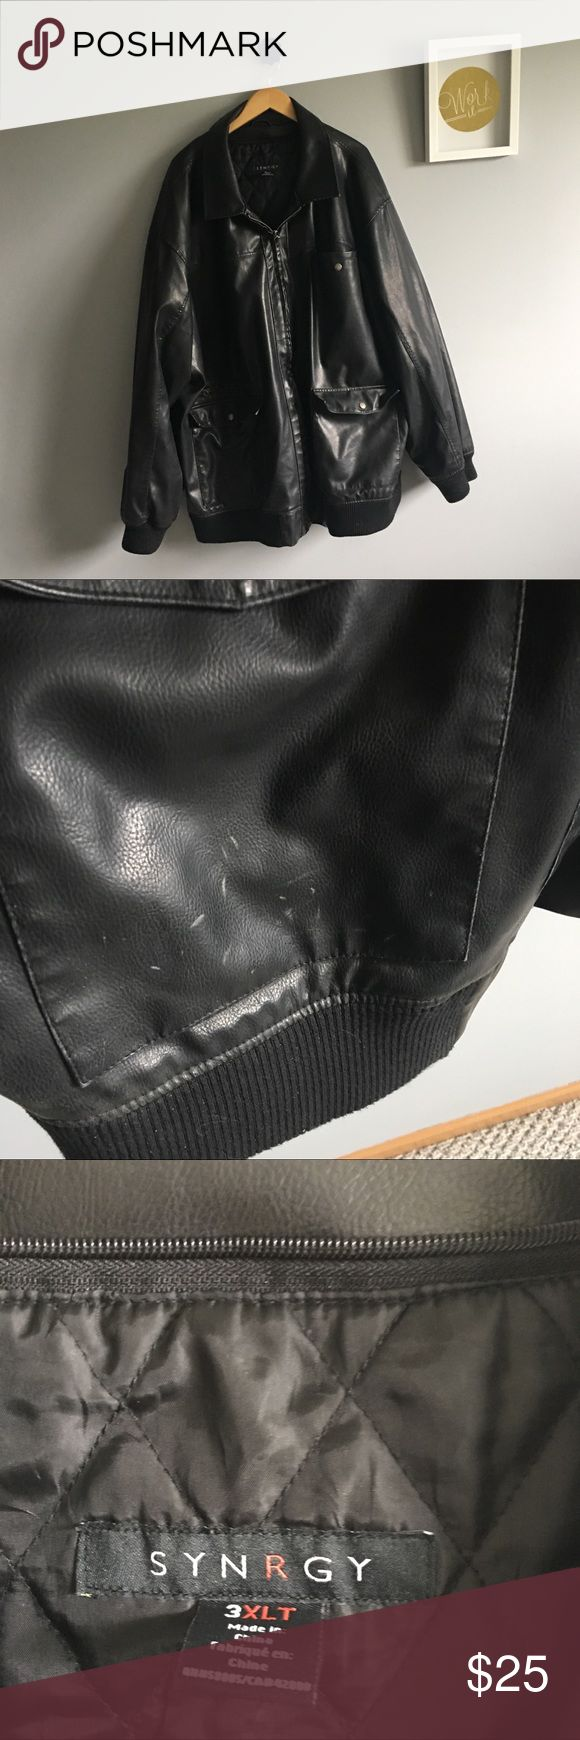 🖤MENS VEGAN LEATHER COAT🖤 3XLT Men's Big & Tall vegan leather bomber style coat, materials on tag pictured. Small white scratches on front pocket. Haven't tried to clean, aren't deep and probably would clean right up. Banded bottom and sleeve cuff. Quilted interior shell. WARM!! synrgy Jackets & Coats Bomber & Varsity